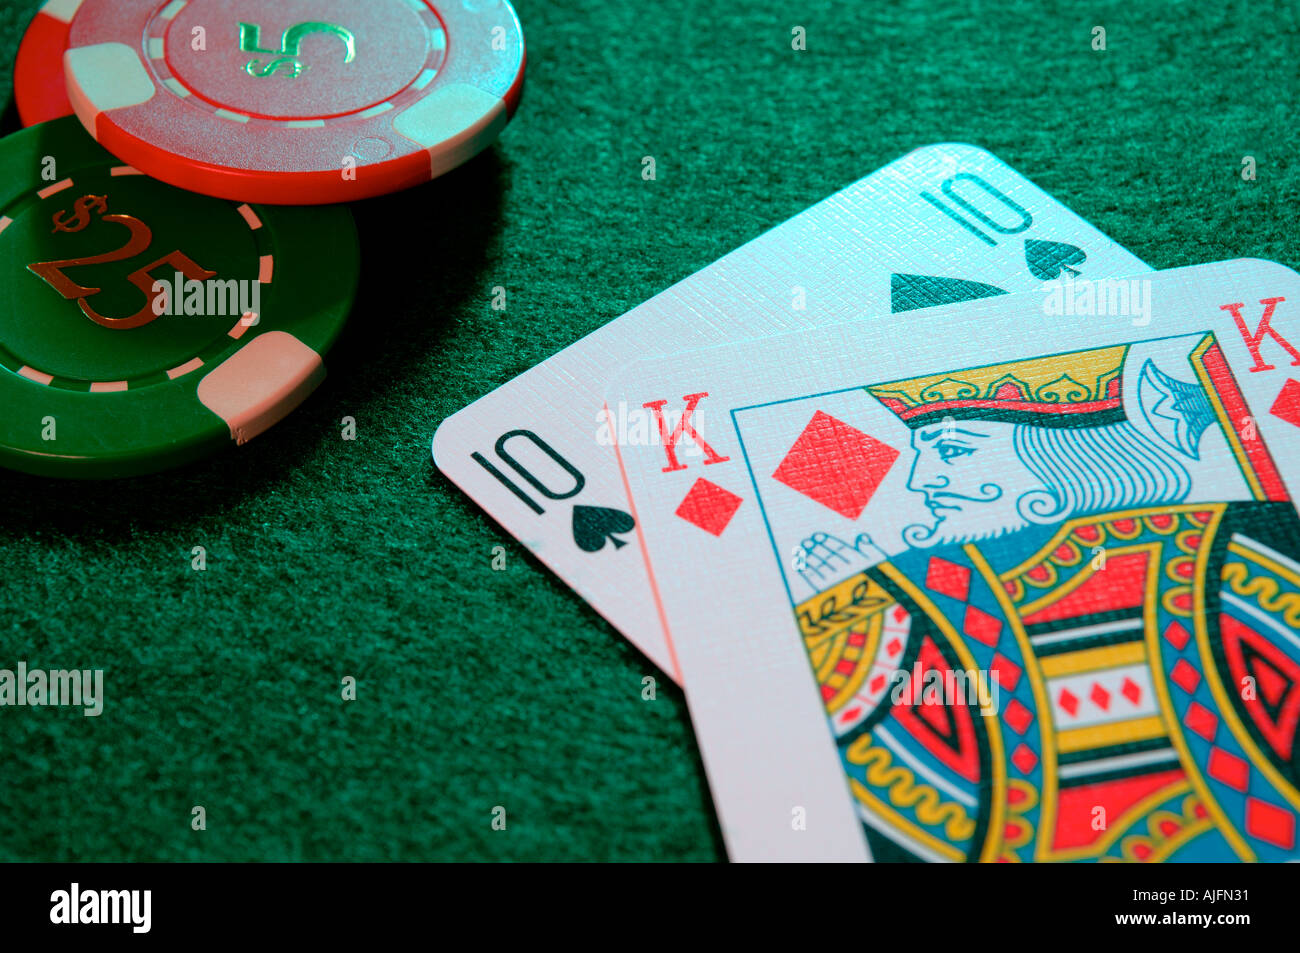 How to play blackjack with cards and chips casino entreprise publique